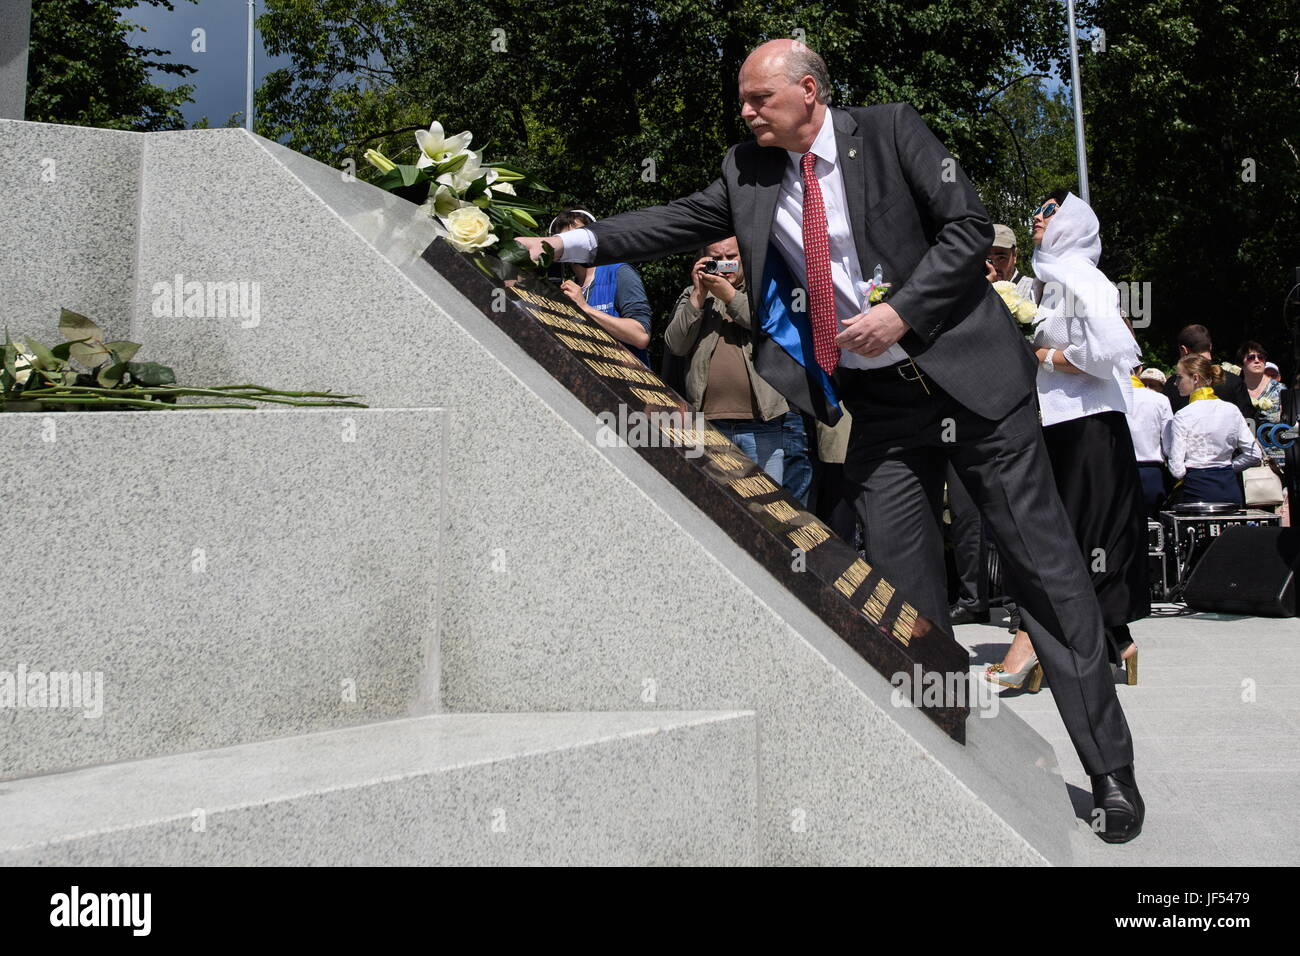 Sverdlovsk Region, Russia. 29th June, 2017. Pavel Kulikovsky, a descendant of Russian Emperor Alexander III, attends - Stock Image